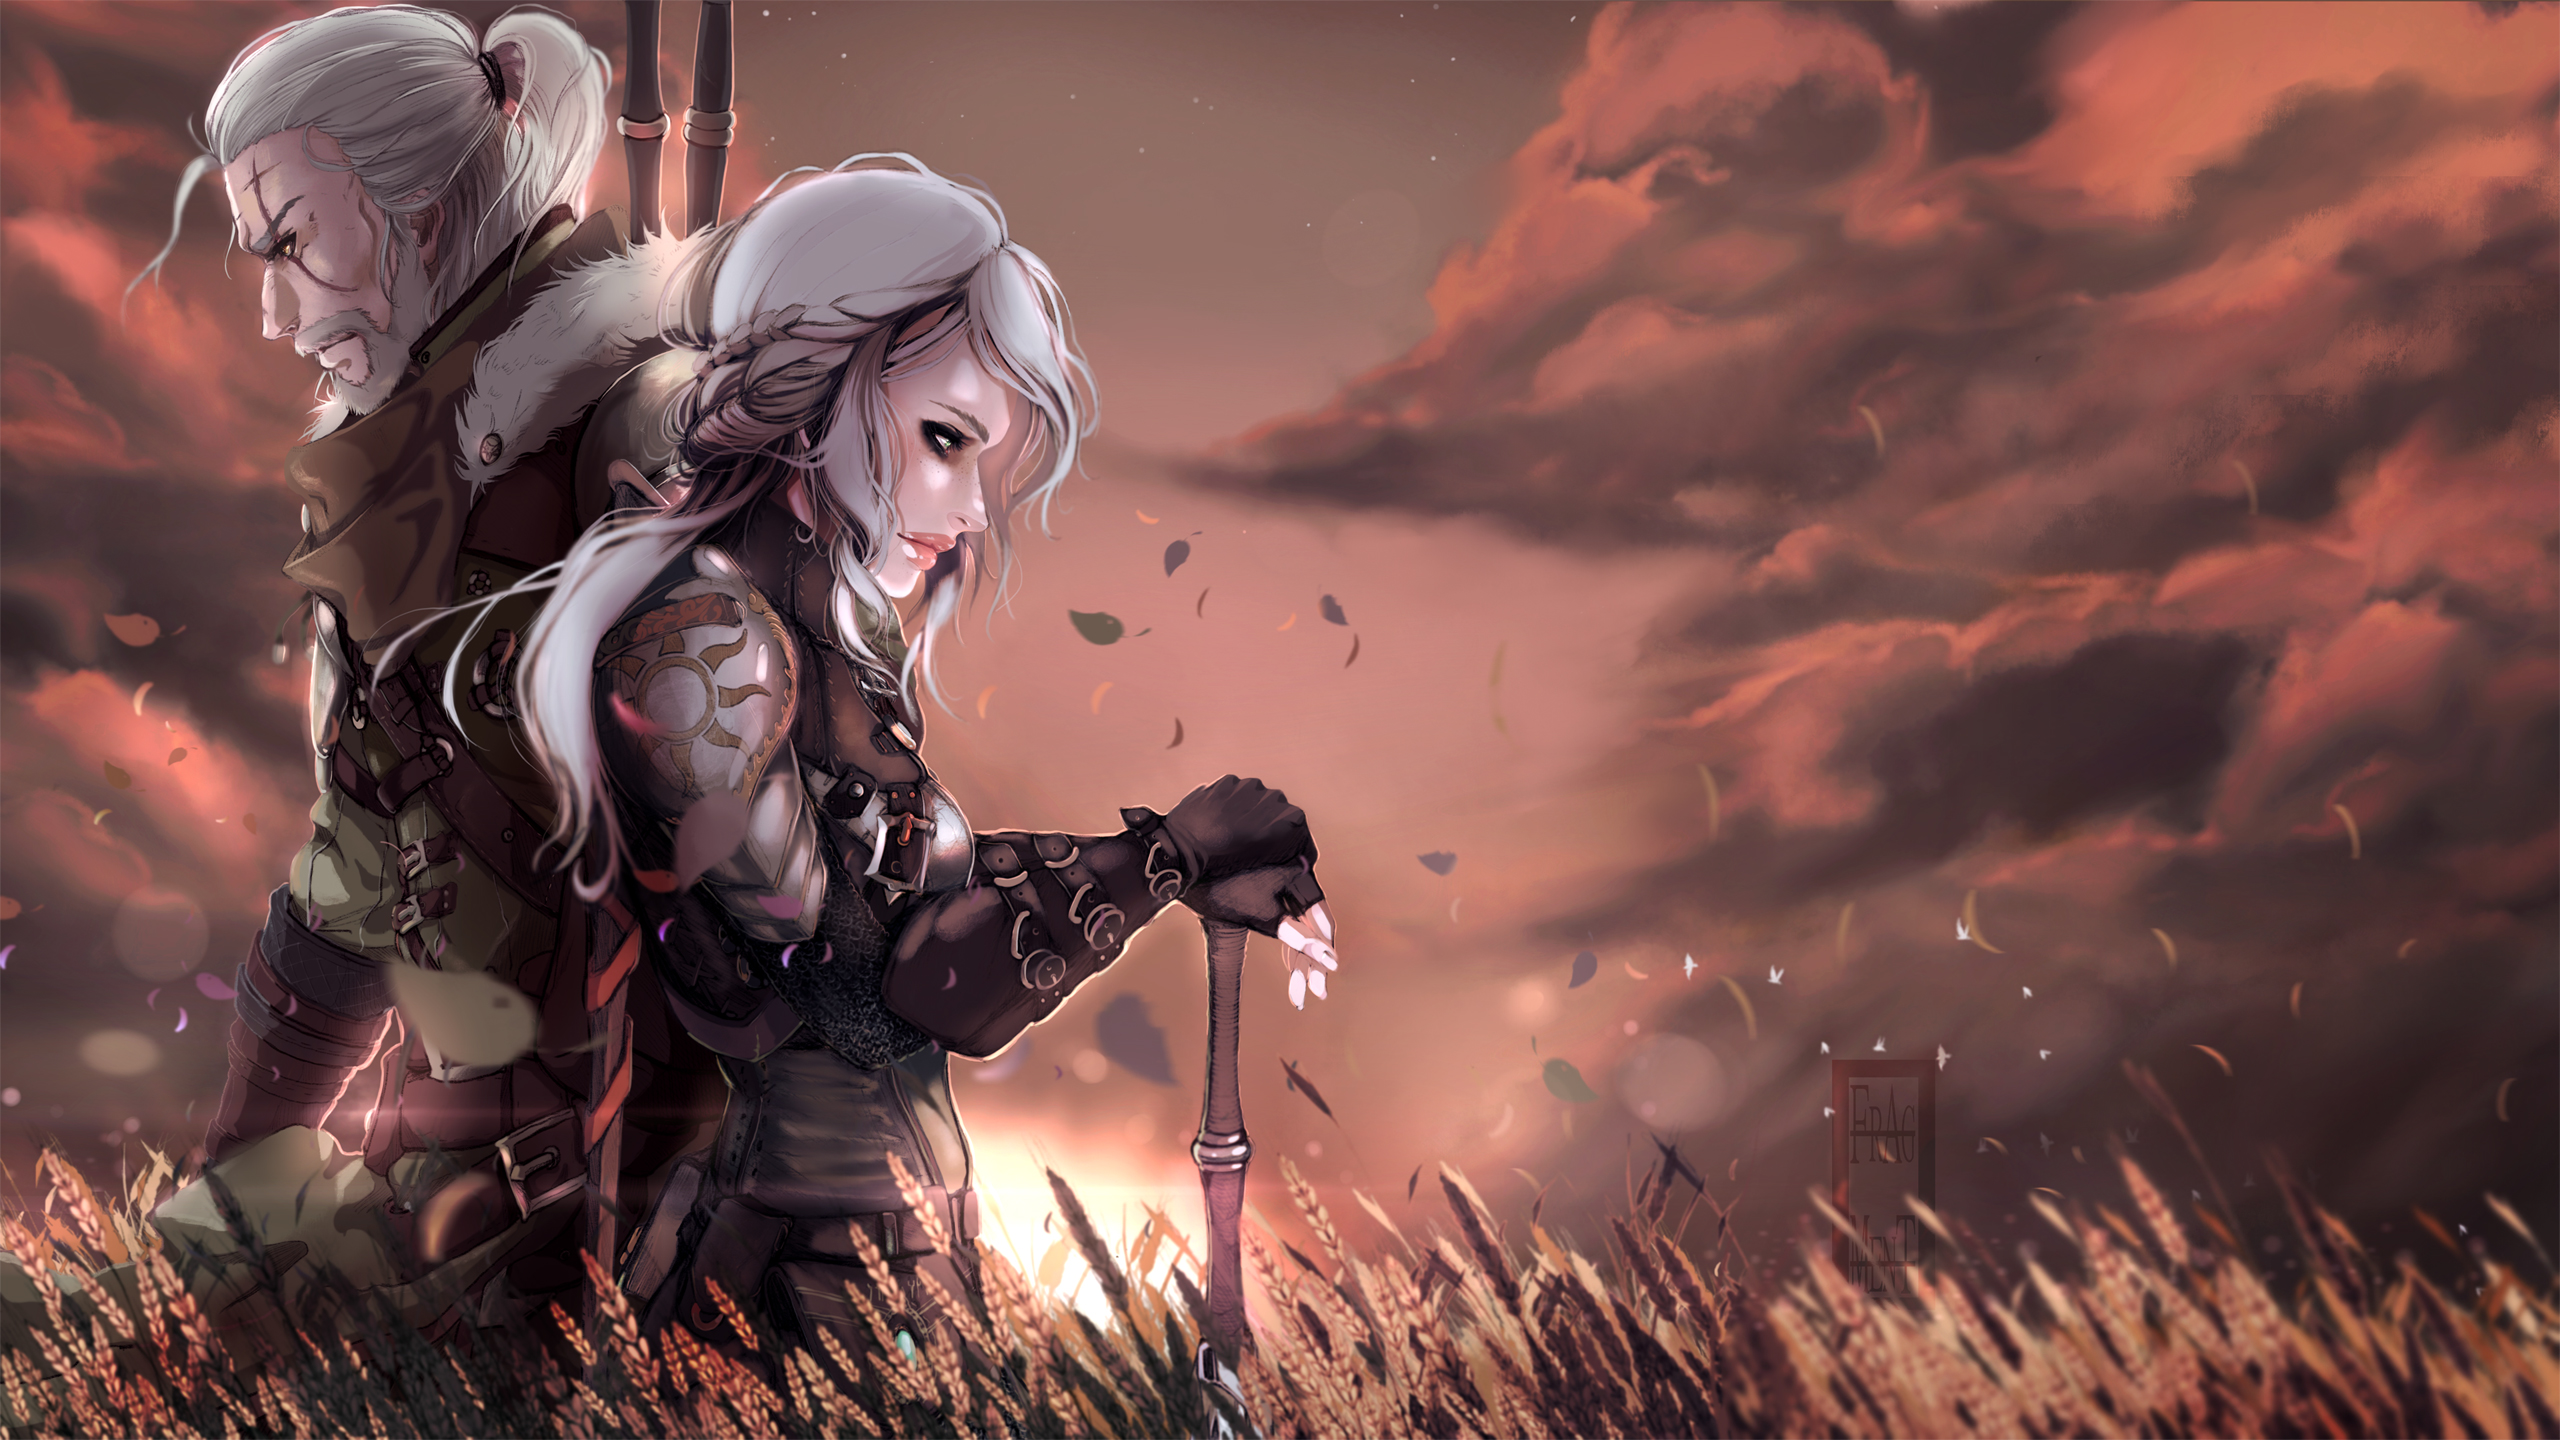 The Witcher 3 Wild Hunt Wallpaper 2135398 Zerochan Anime